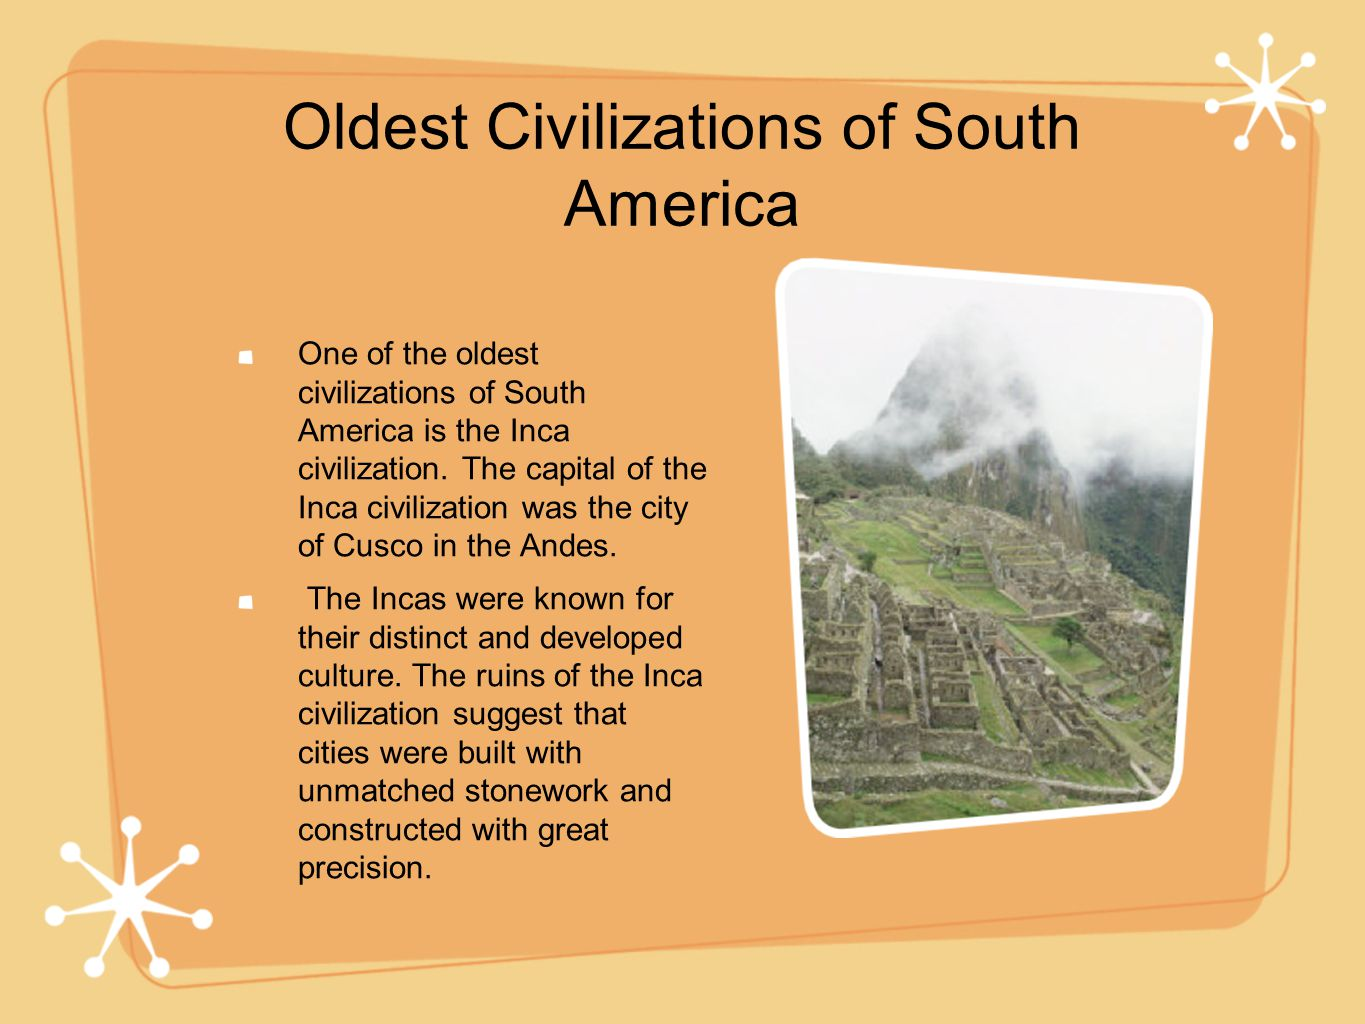 Of the three Native civilizations found in South America (Mayas, Incas, and Aztecs), the Incas were the least warlike.